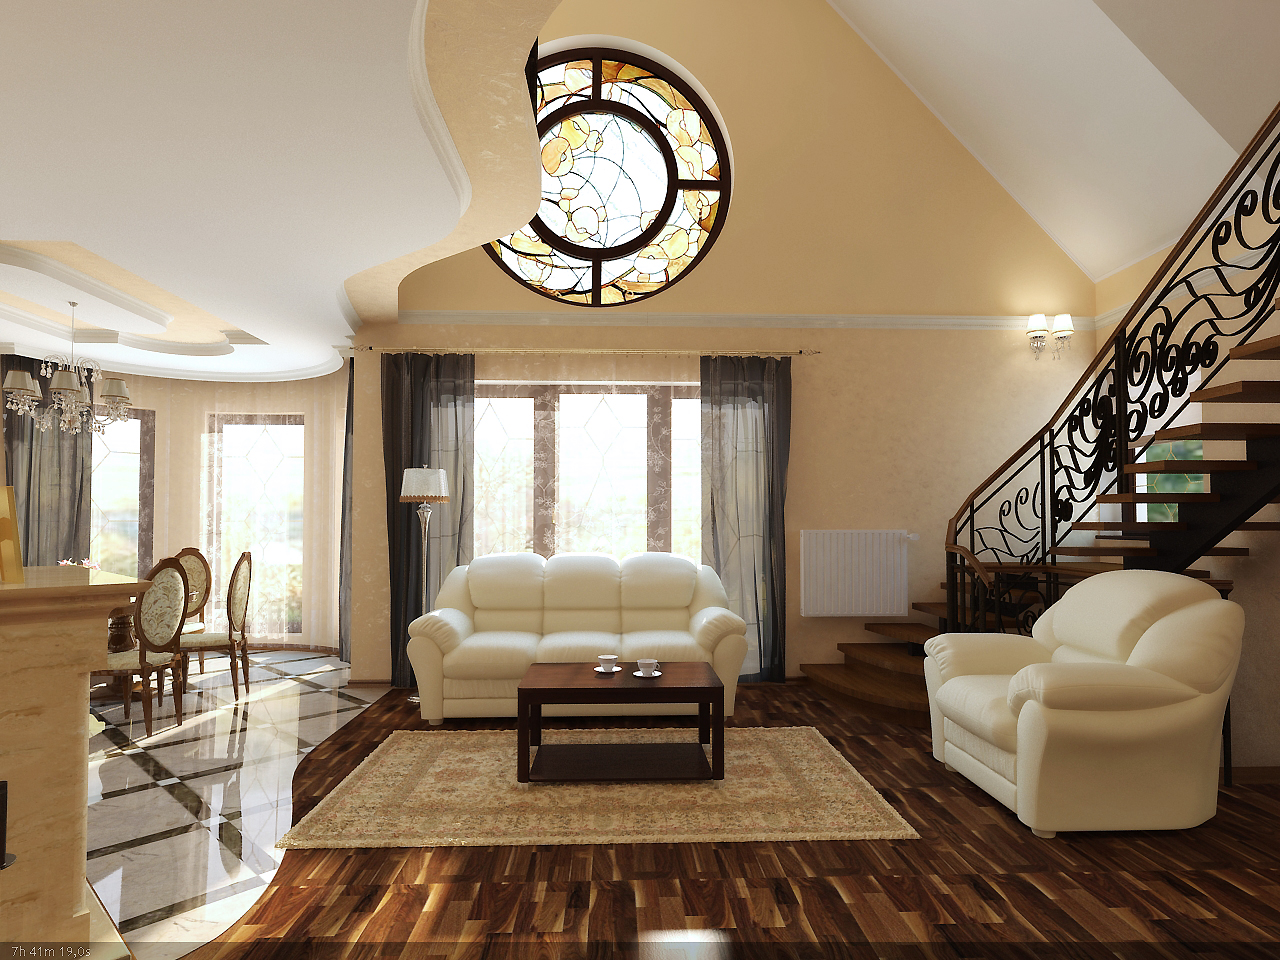 Interior Decorations For Home Classic Interior Design